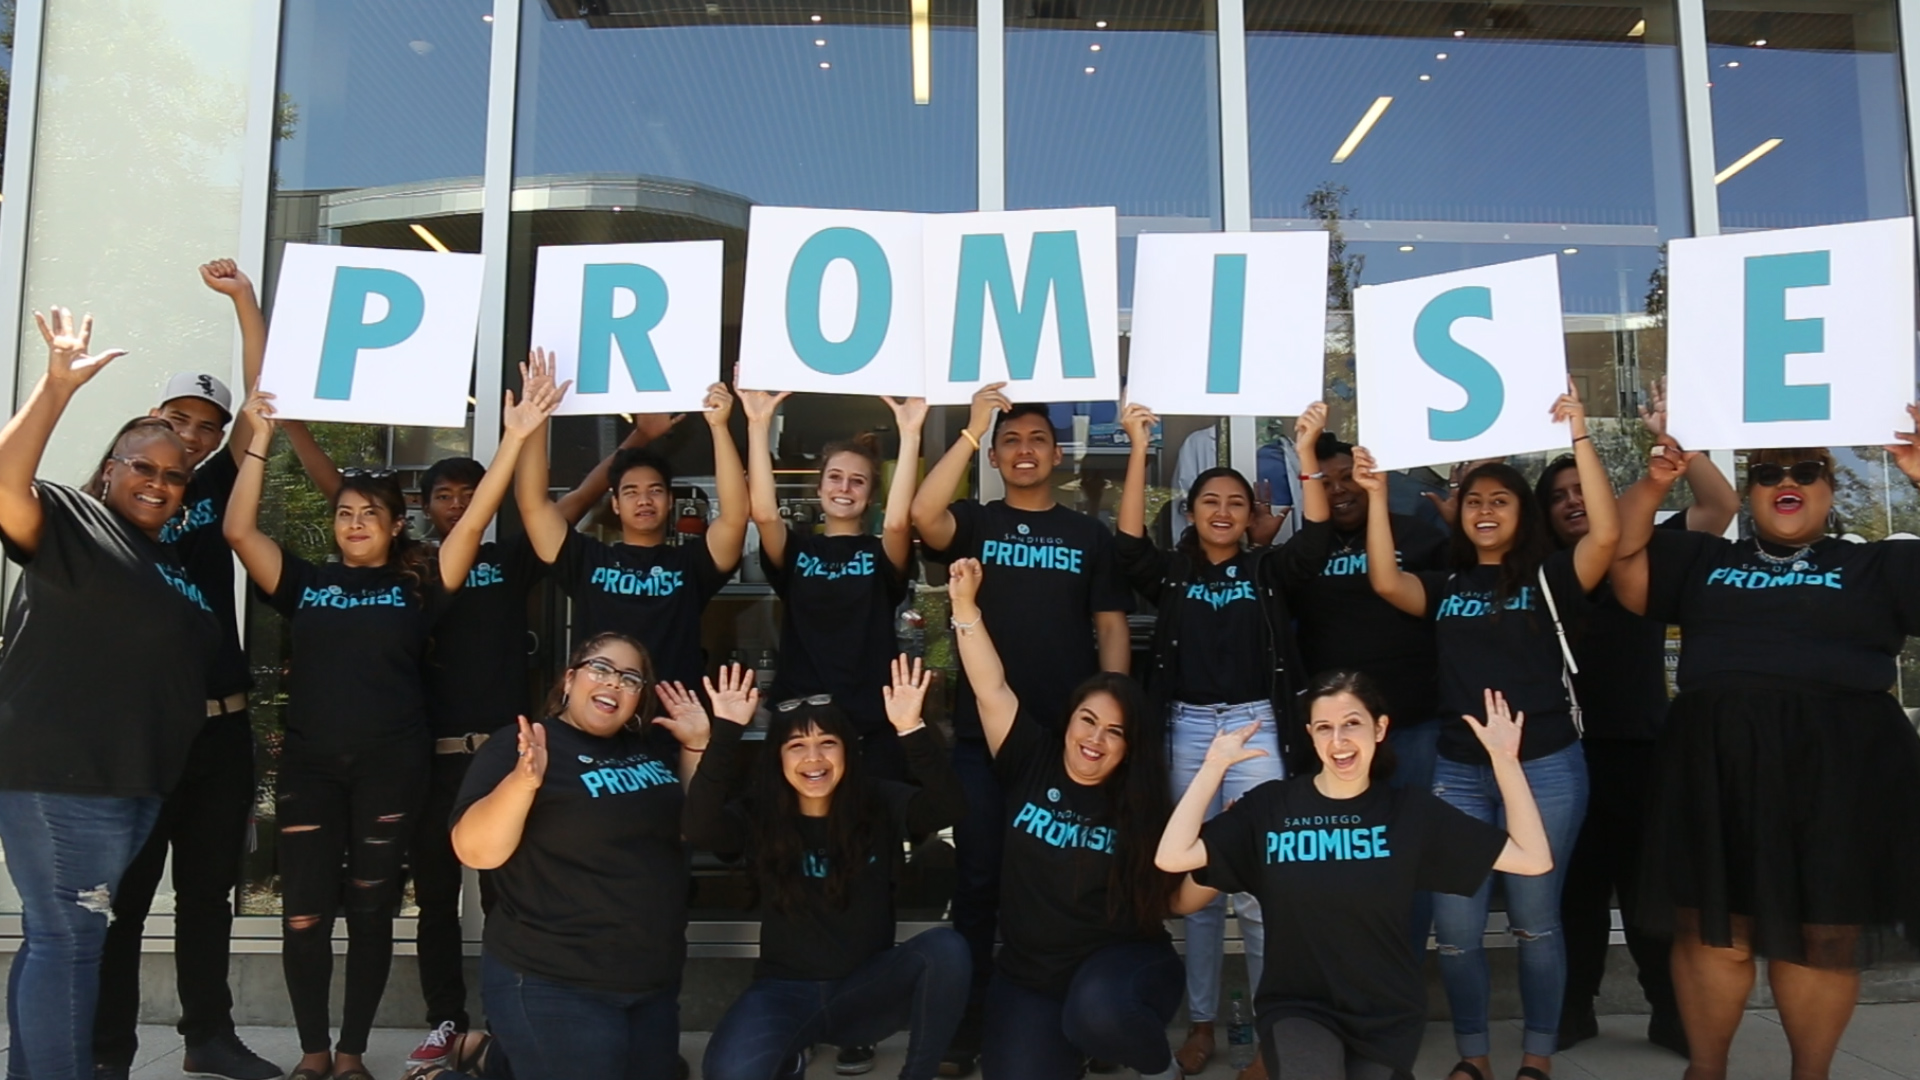 Promise students hold letters spelling promise